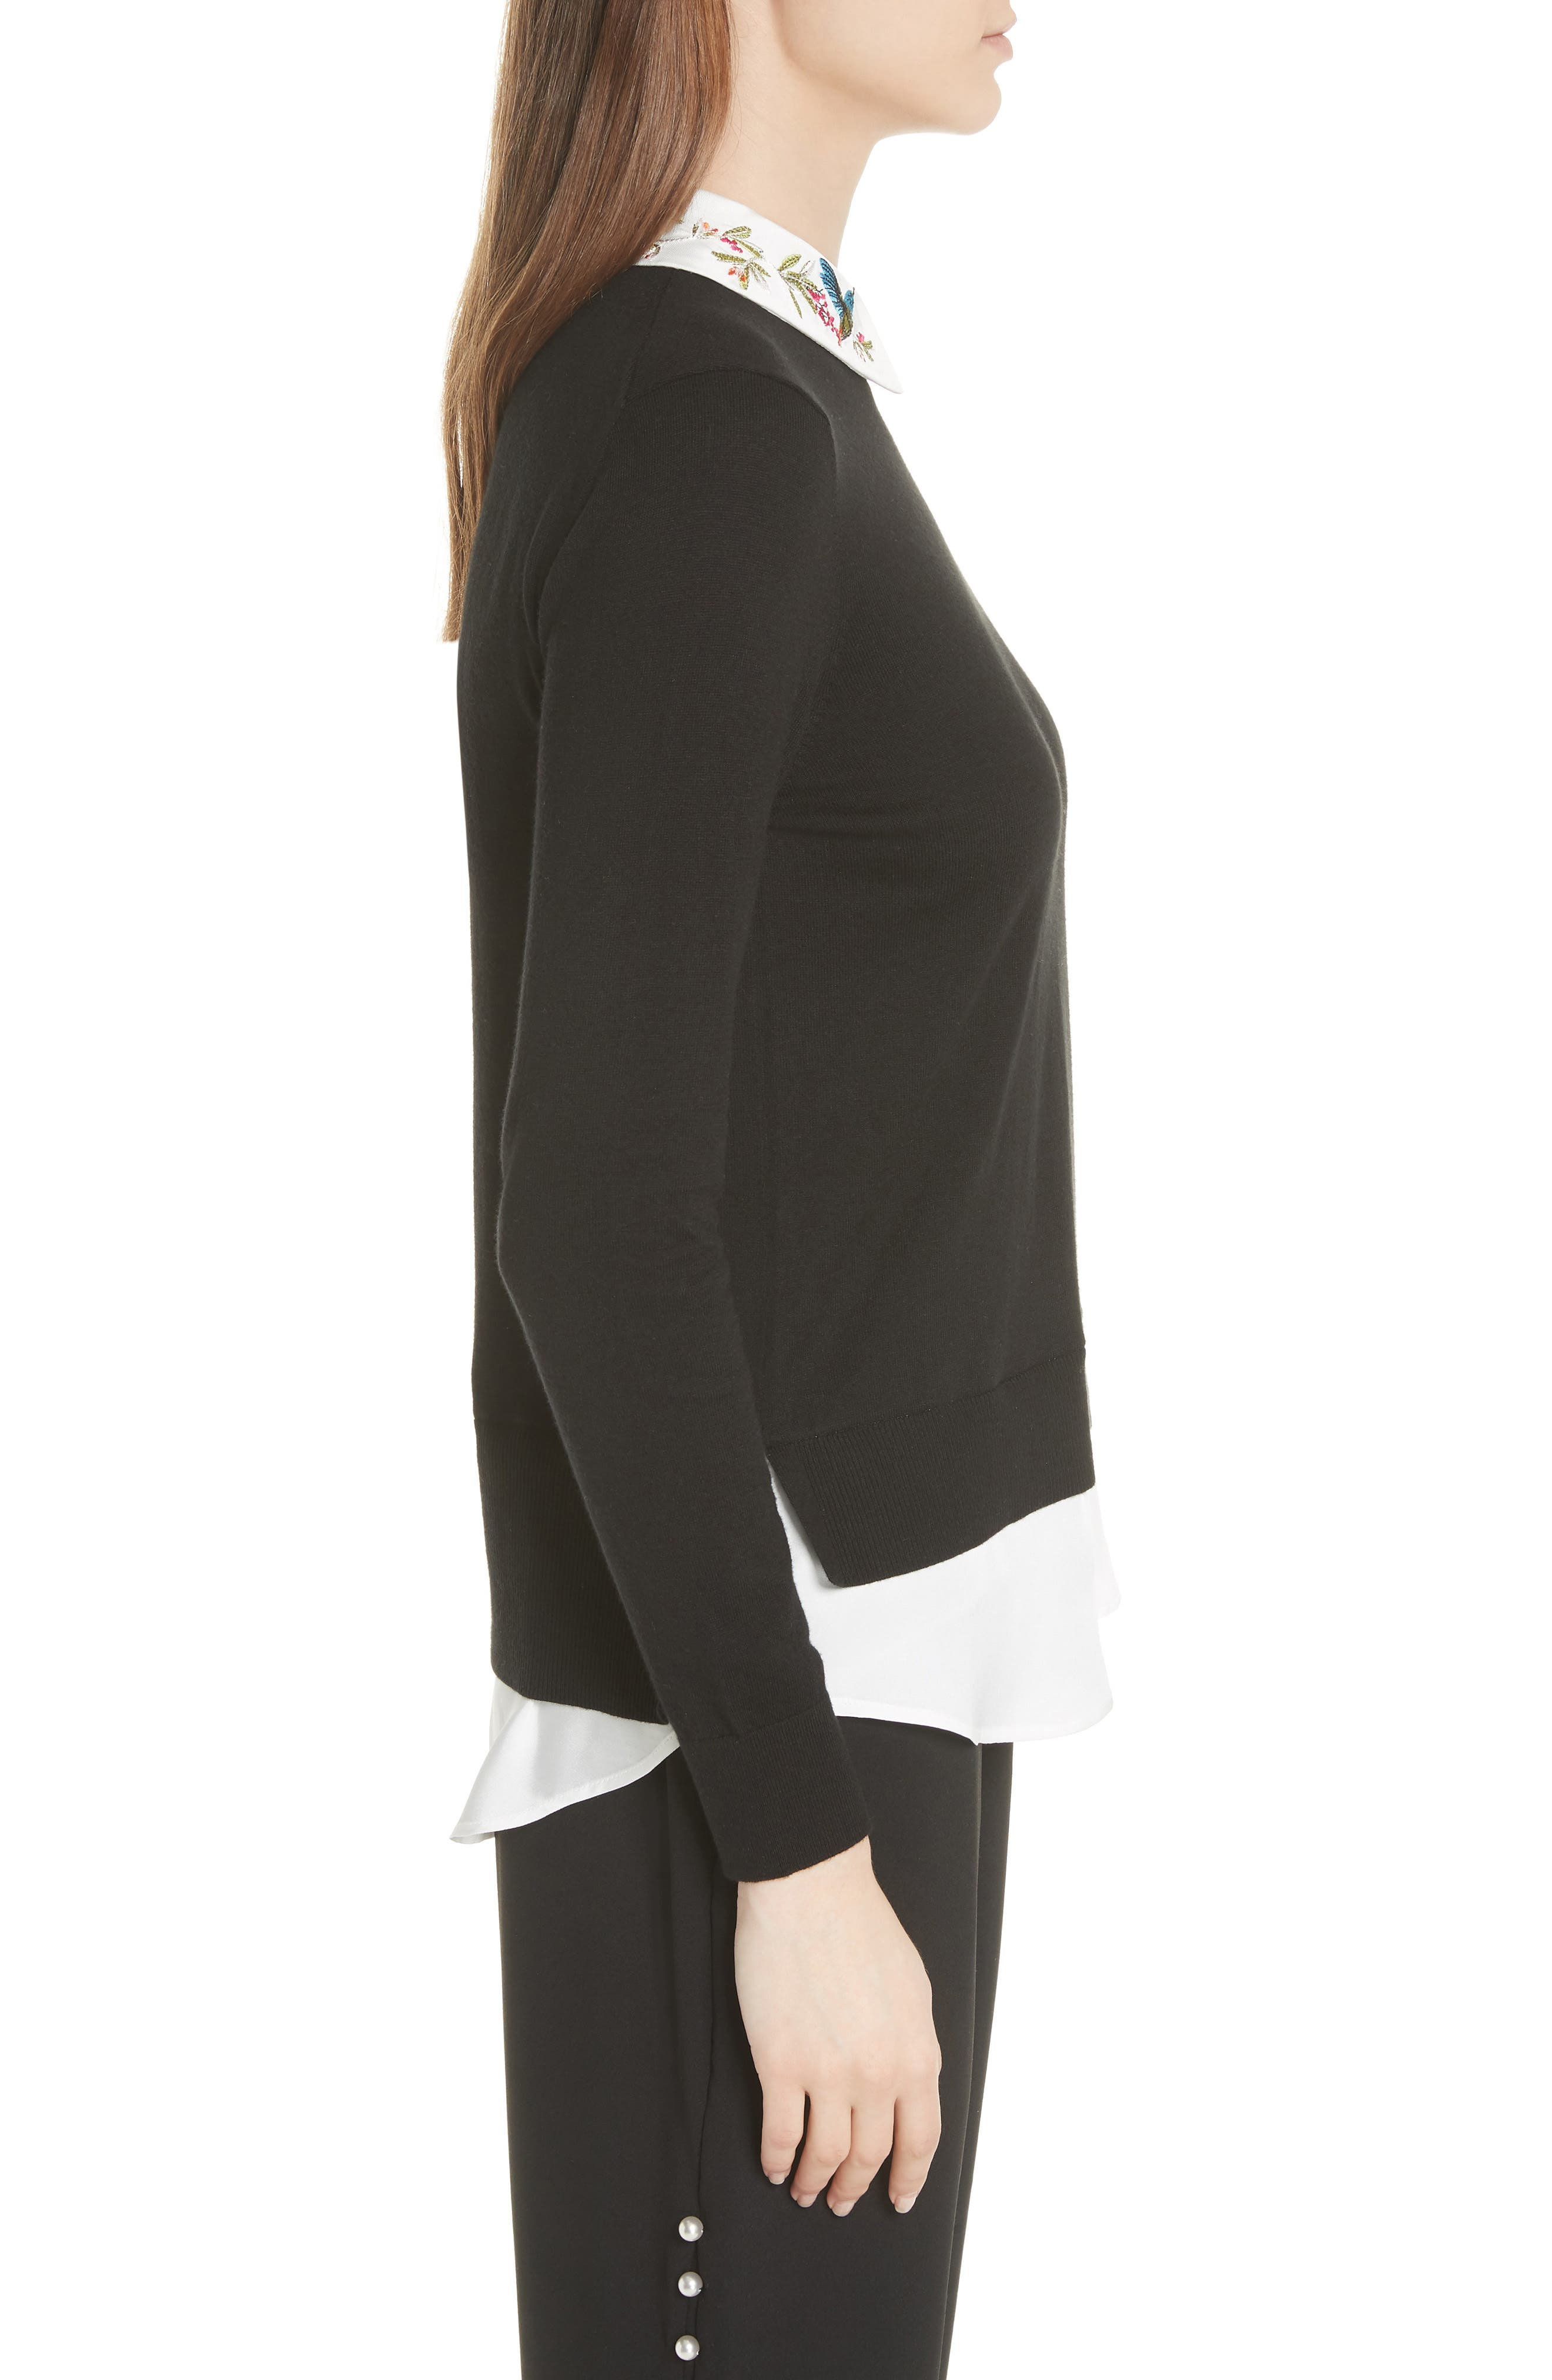 Highgrove Layered Look Sweater,                             Alternate thumbnail 3, color,                             Black